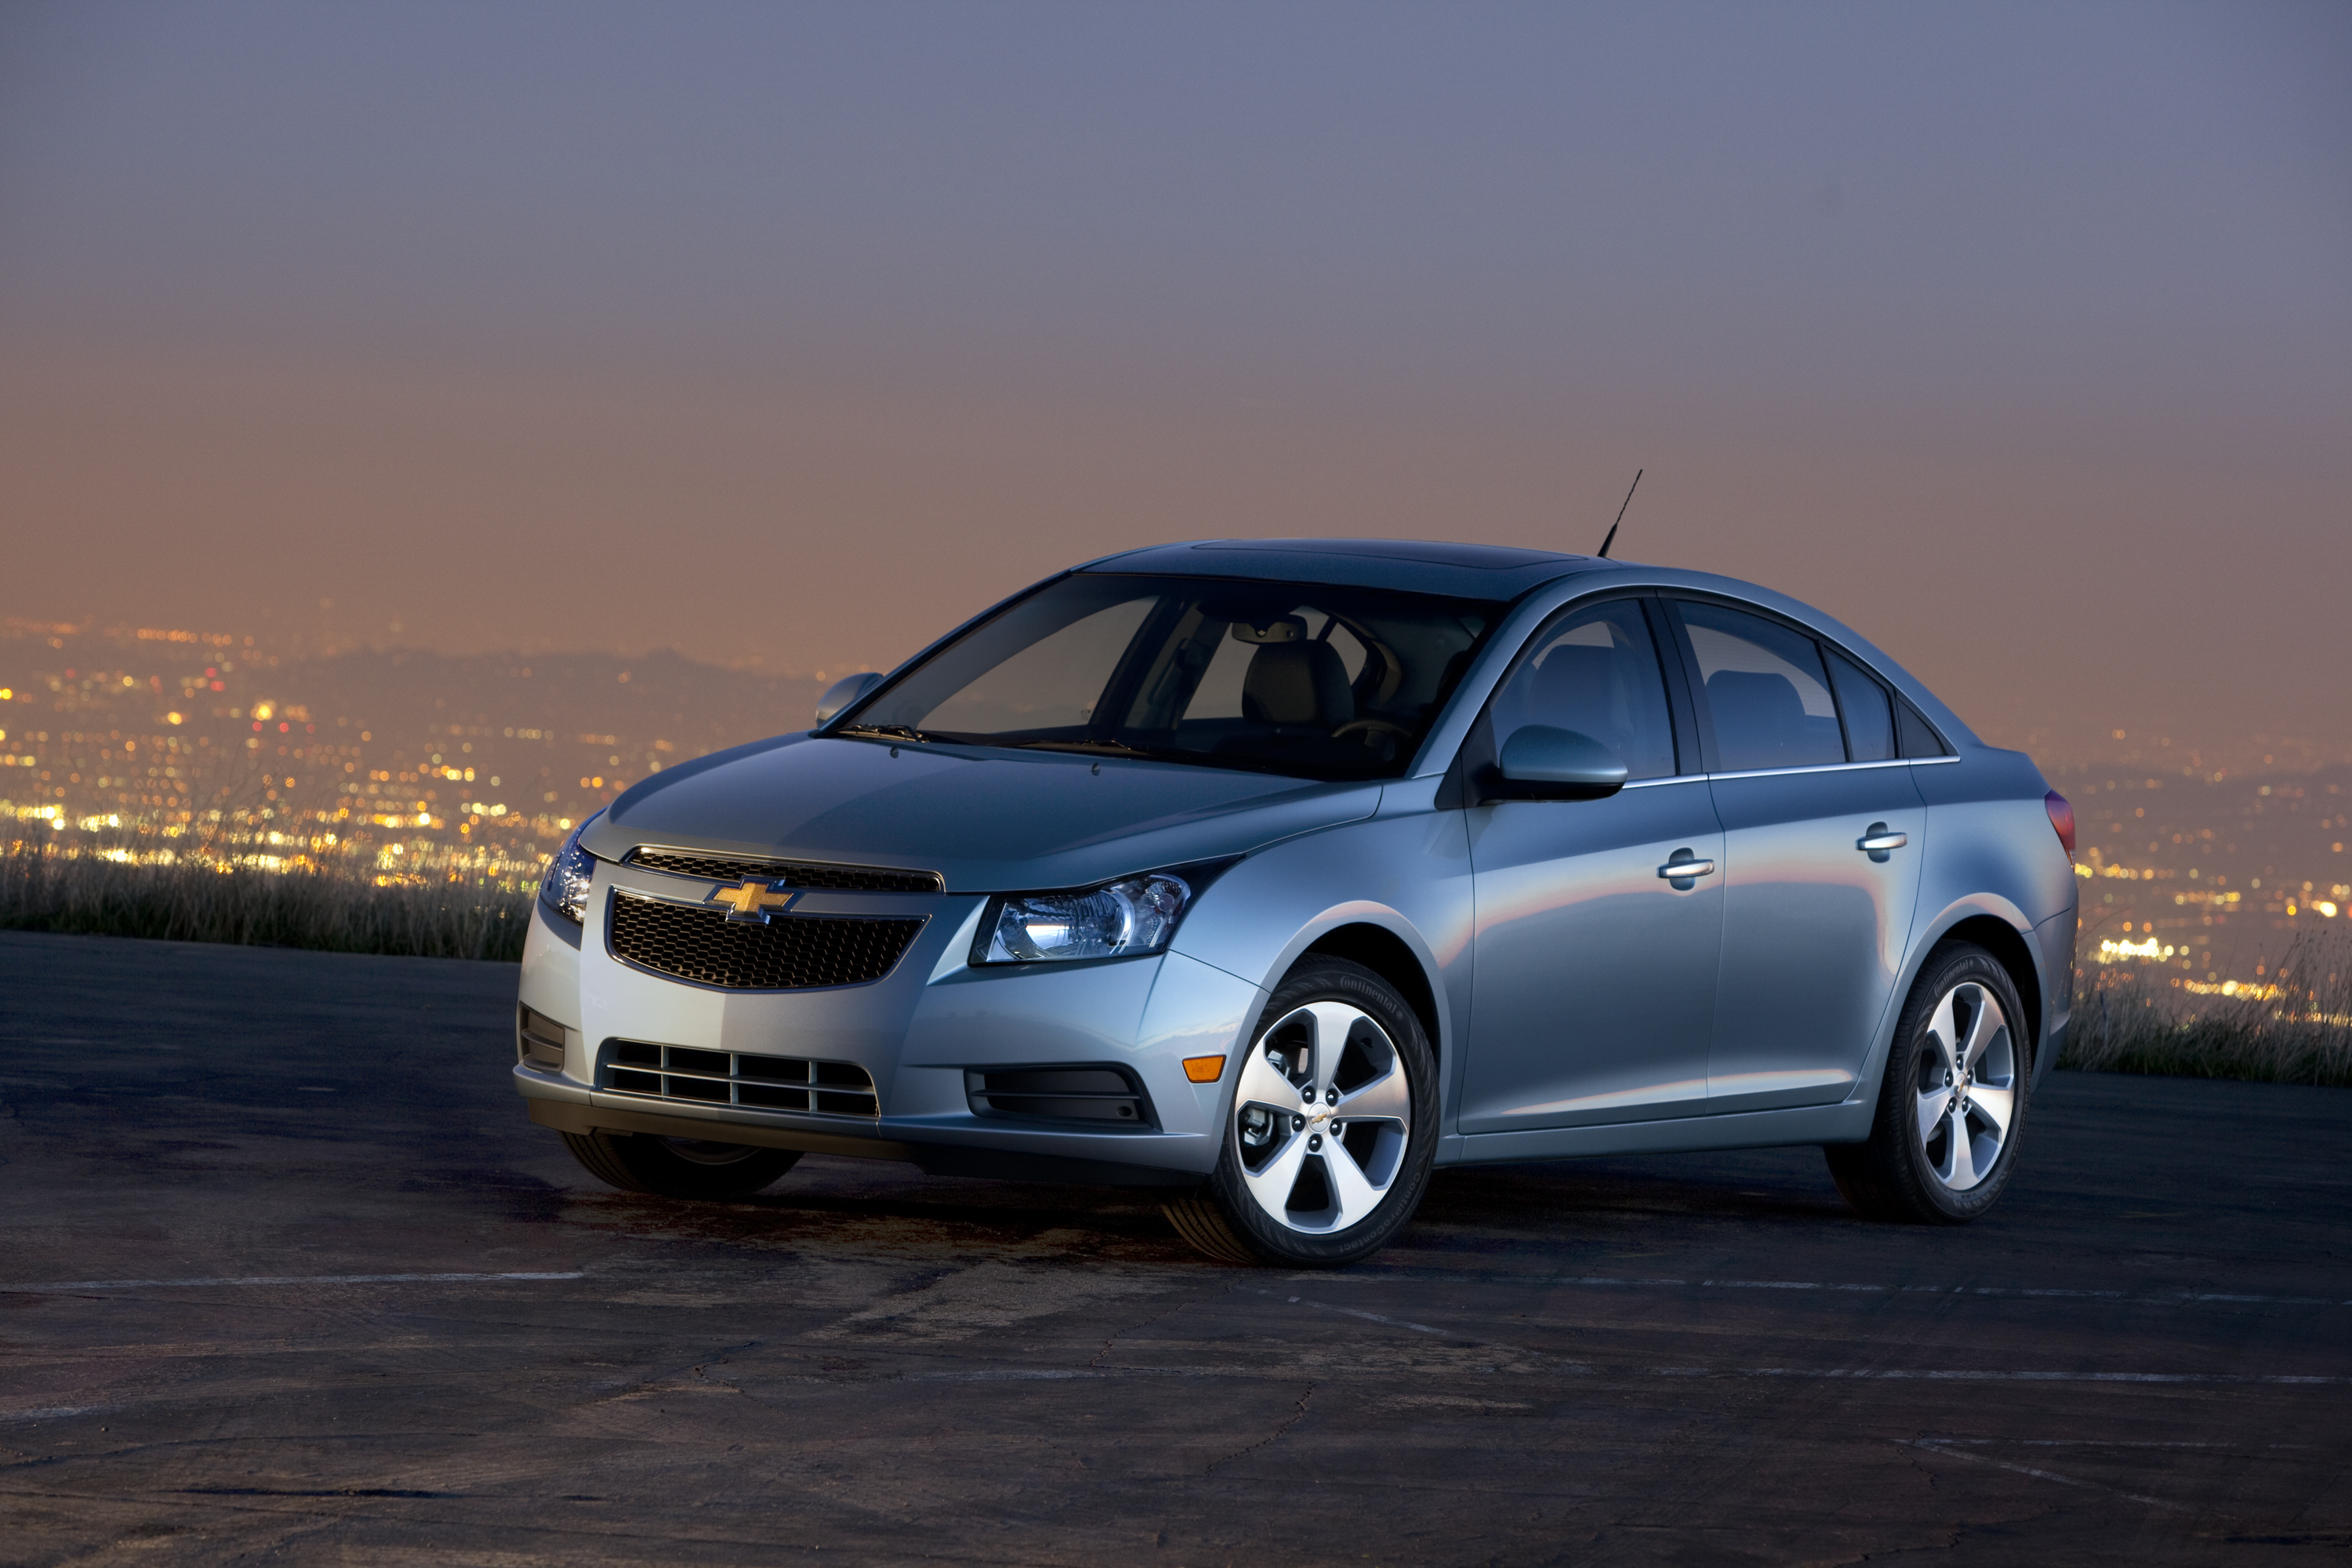 2011 chevrolet cruze chevy review ratings specs. Black Bedroom Furniture Sets. Home Design Ideas